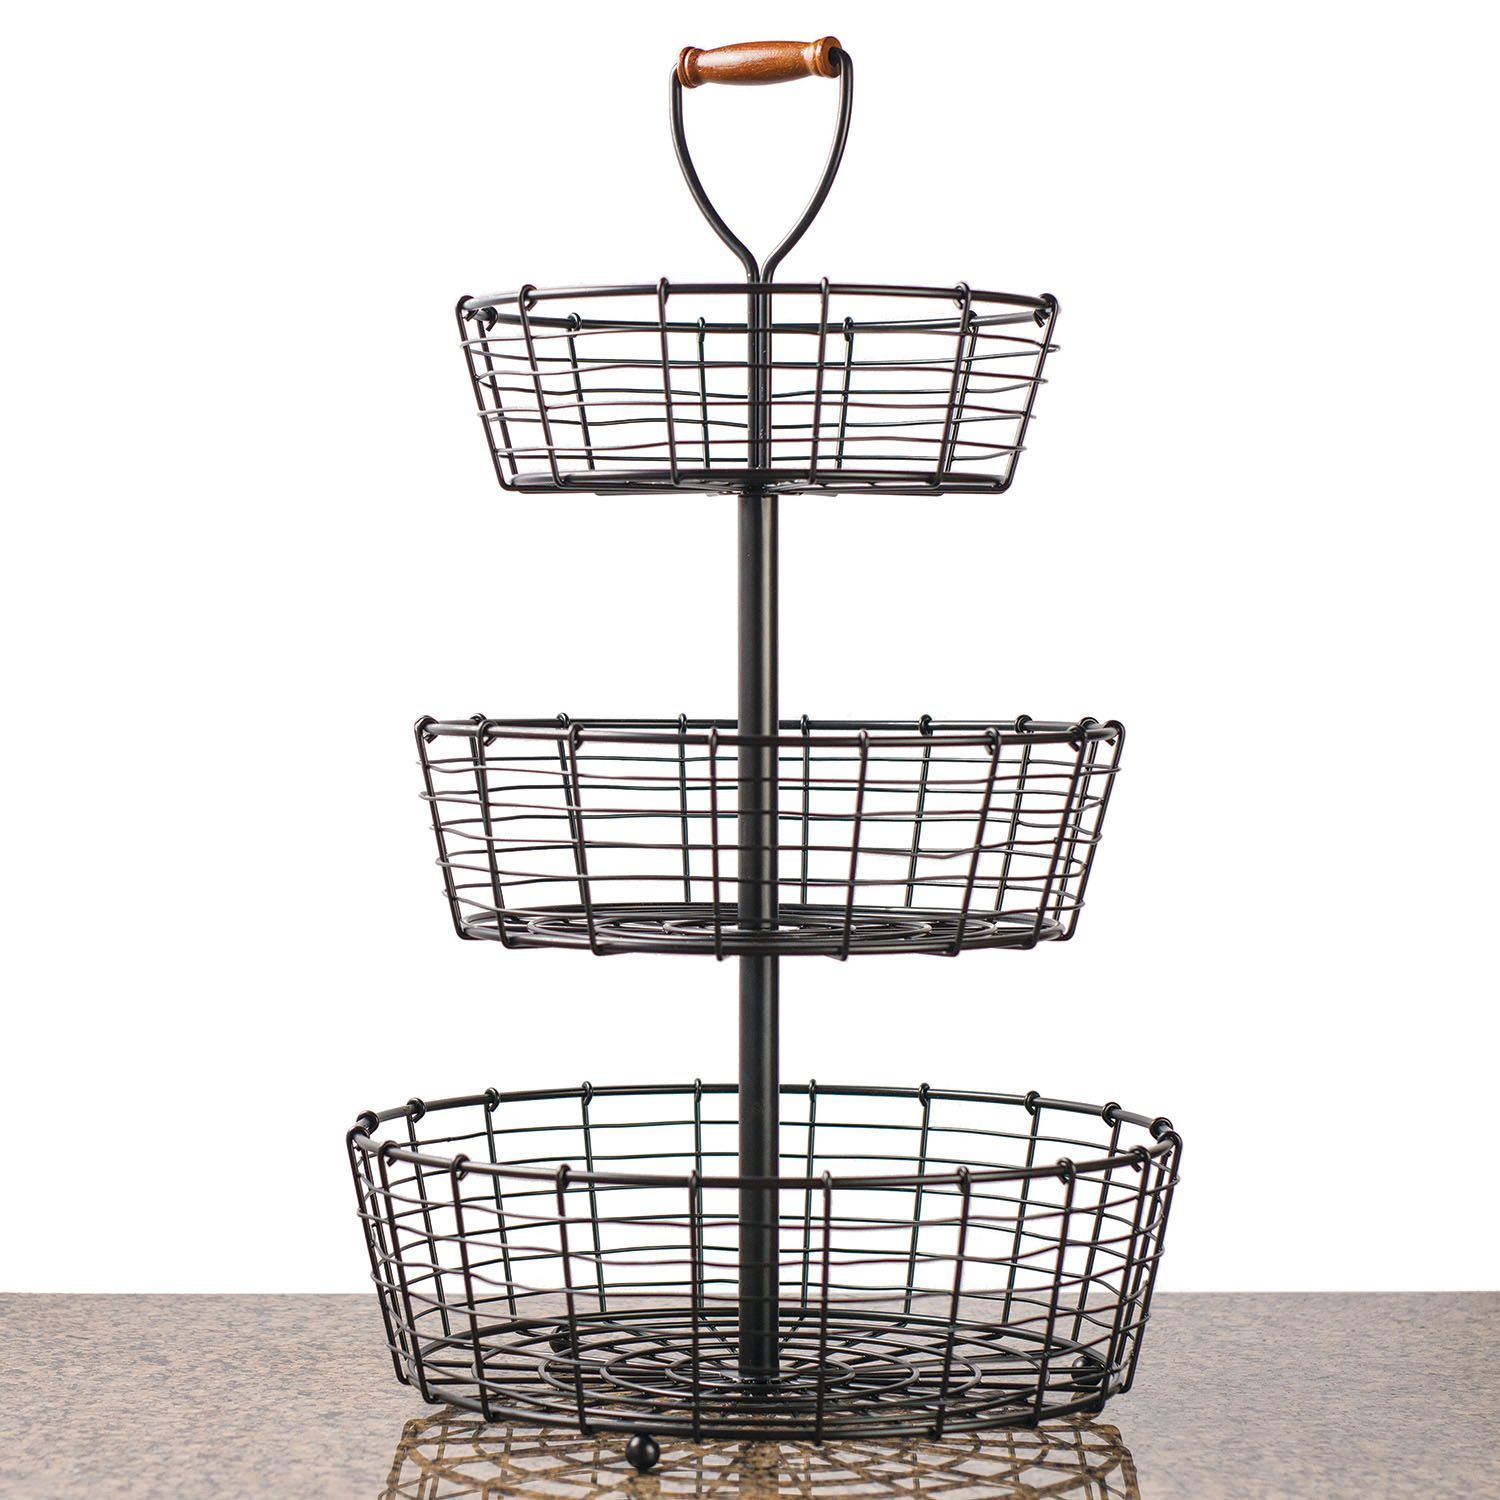 Giftburg 3 Tier Wrought Iron Wire Basket Lajfhaki